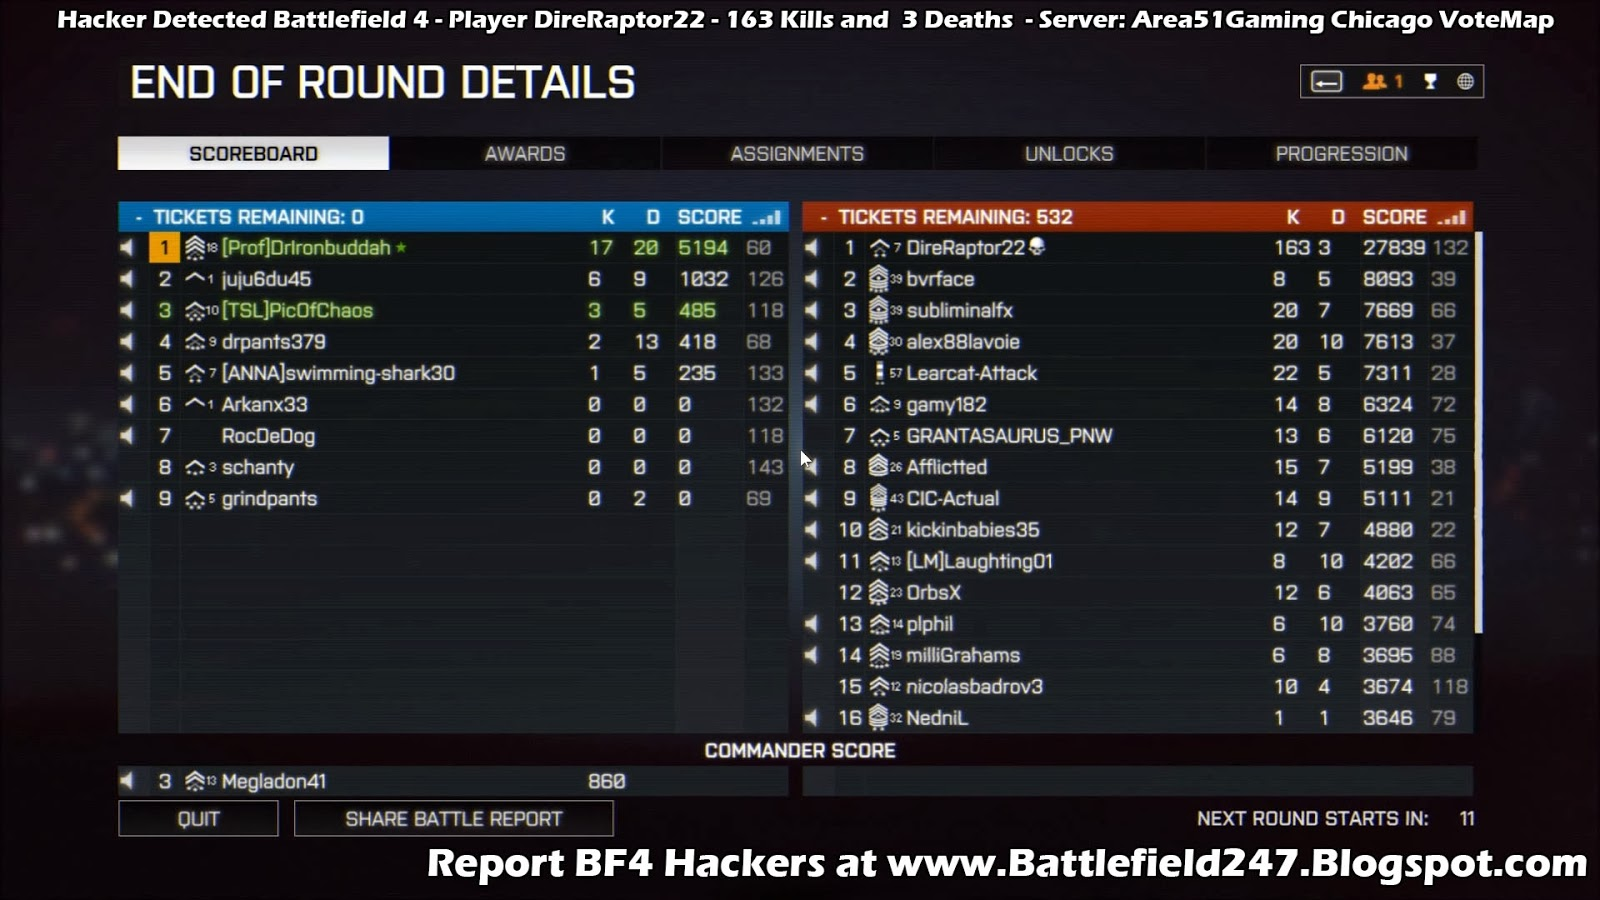 Busted - BF4 Aimbot Cheater - DireRaptor22 - Dice Punkbuster